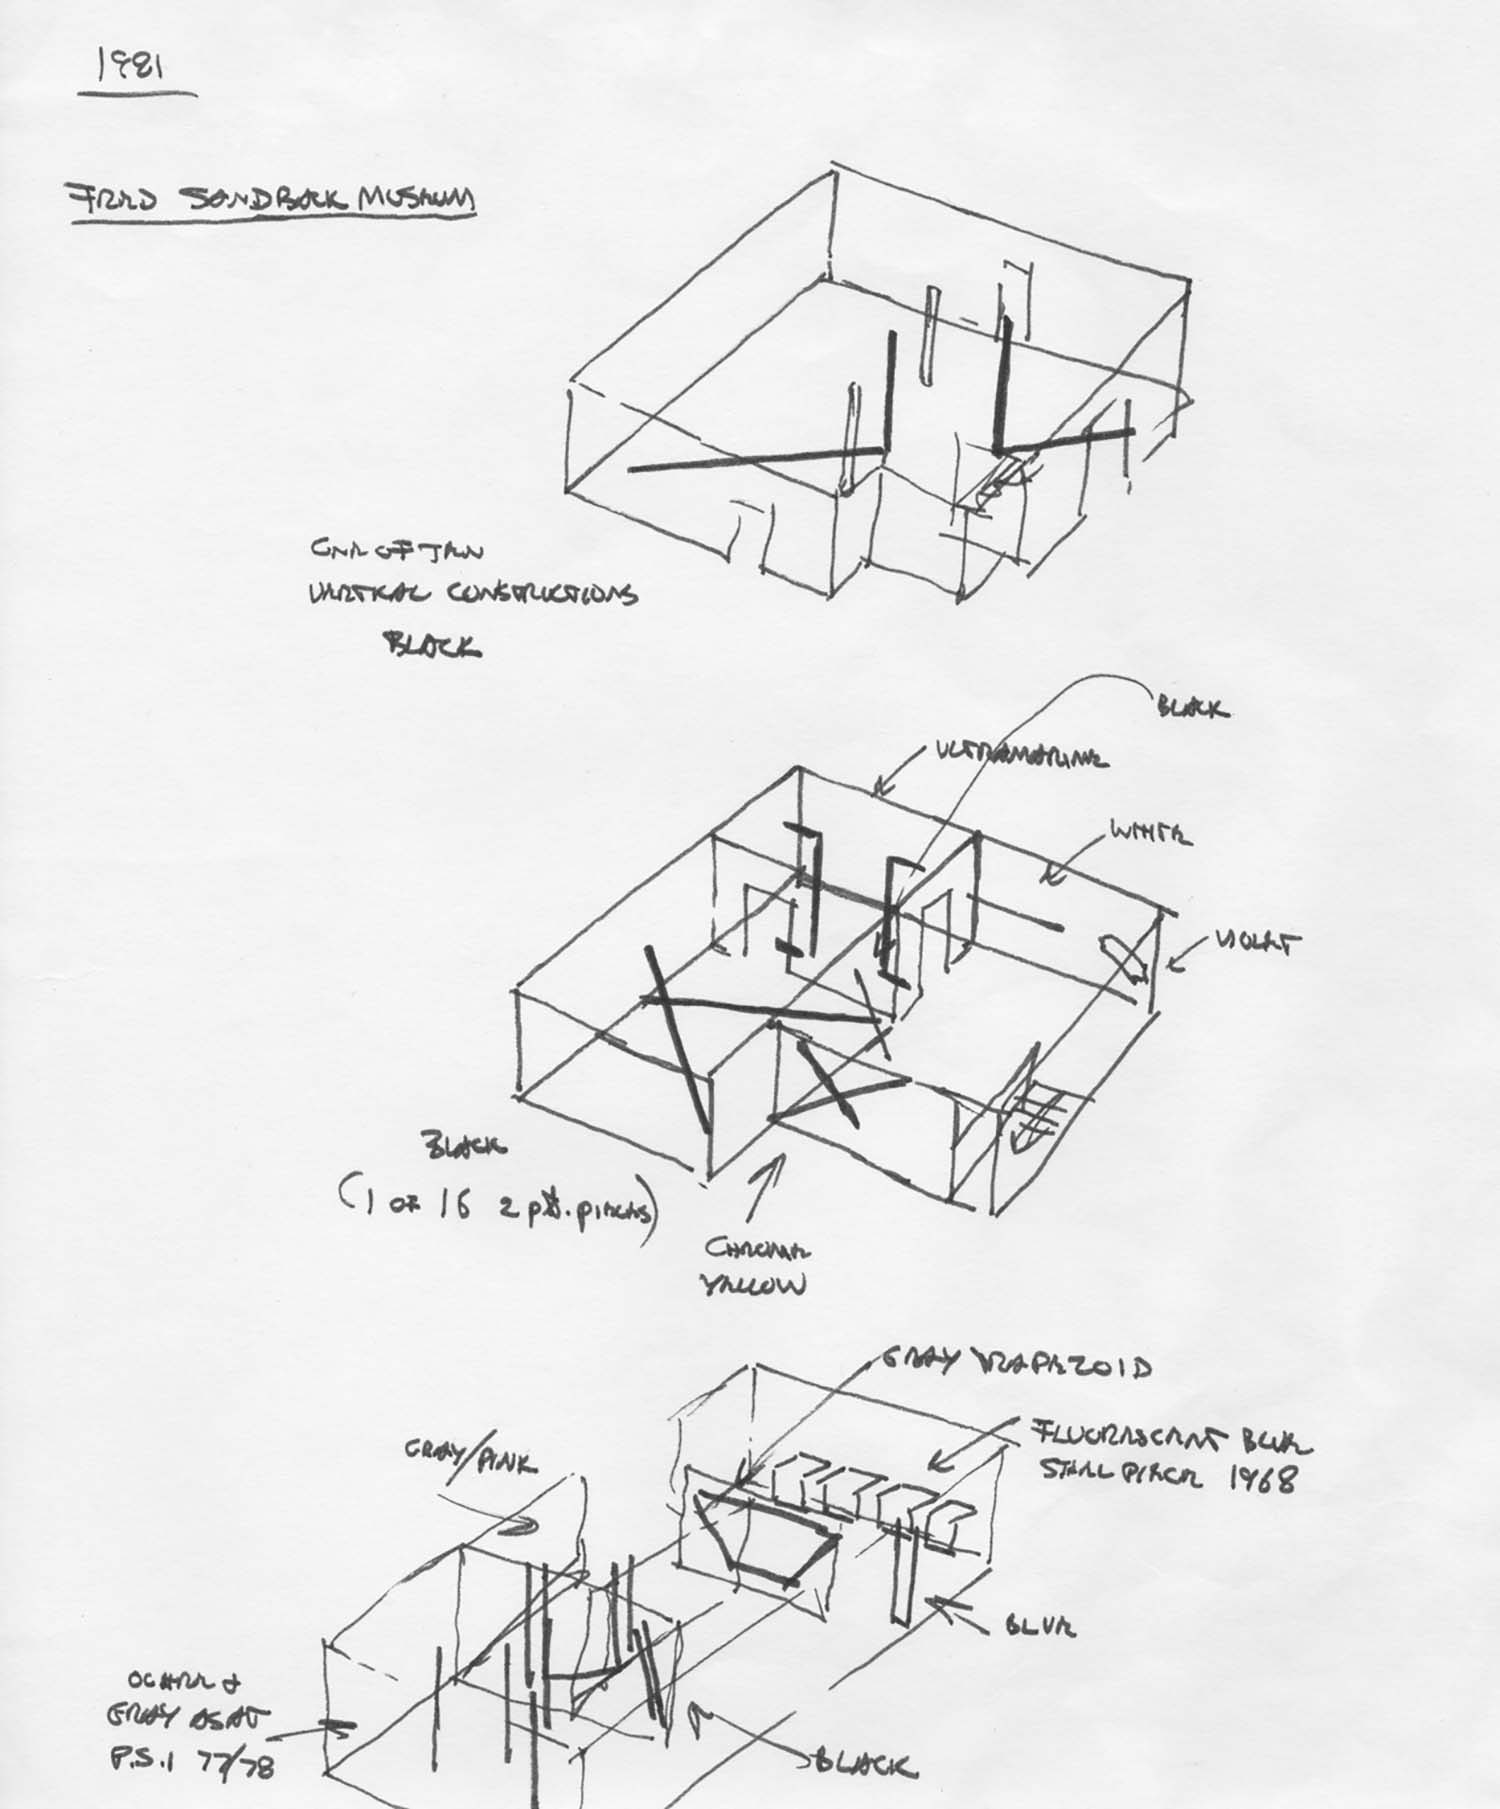 Sandback's diagram for the first exhibition at the <br/>Fred Sandback Museum, Winchendon, MA